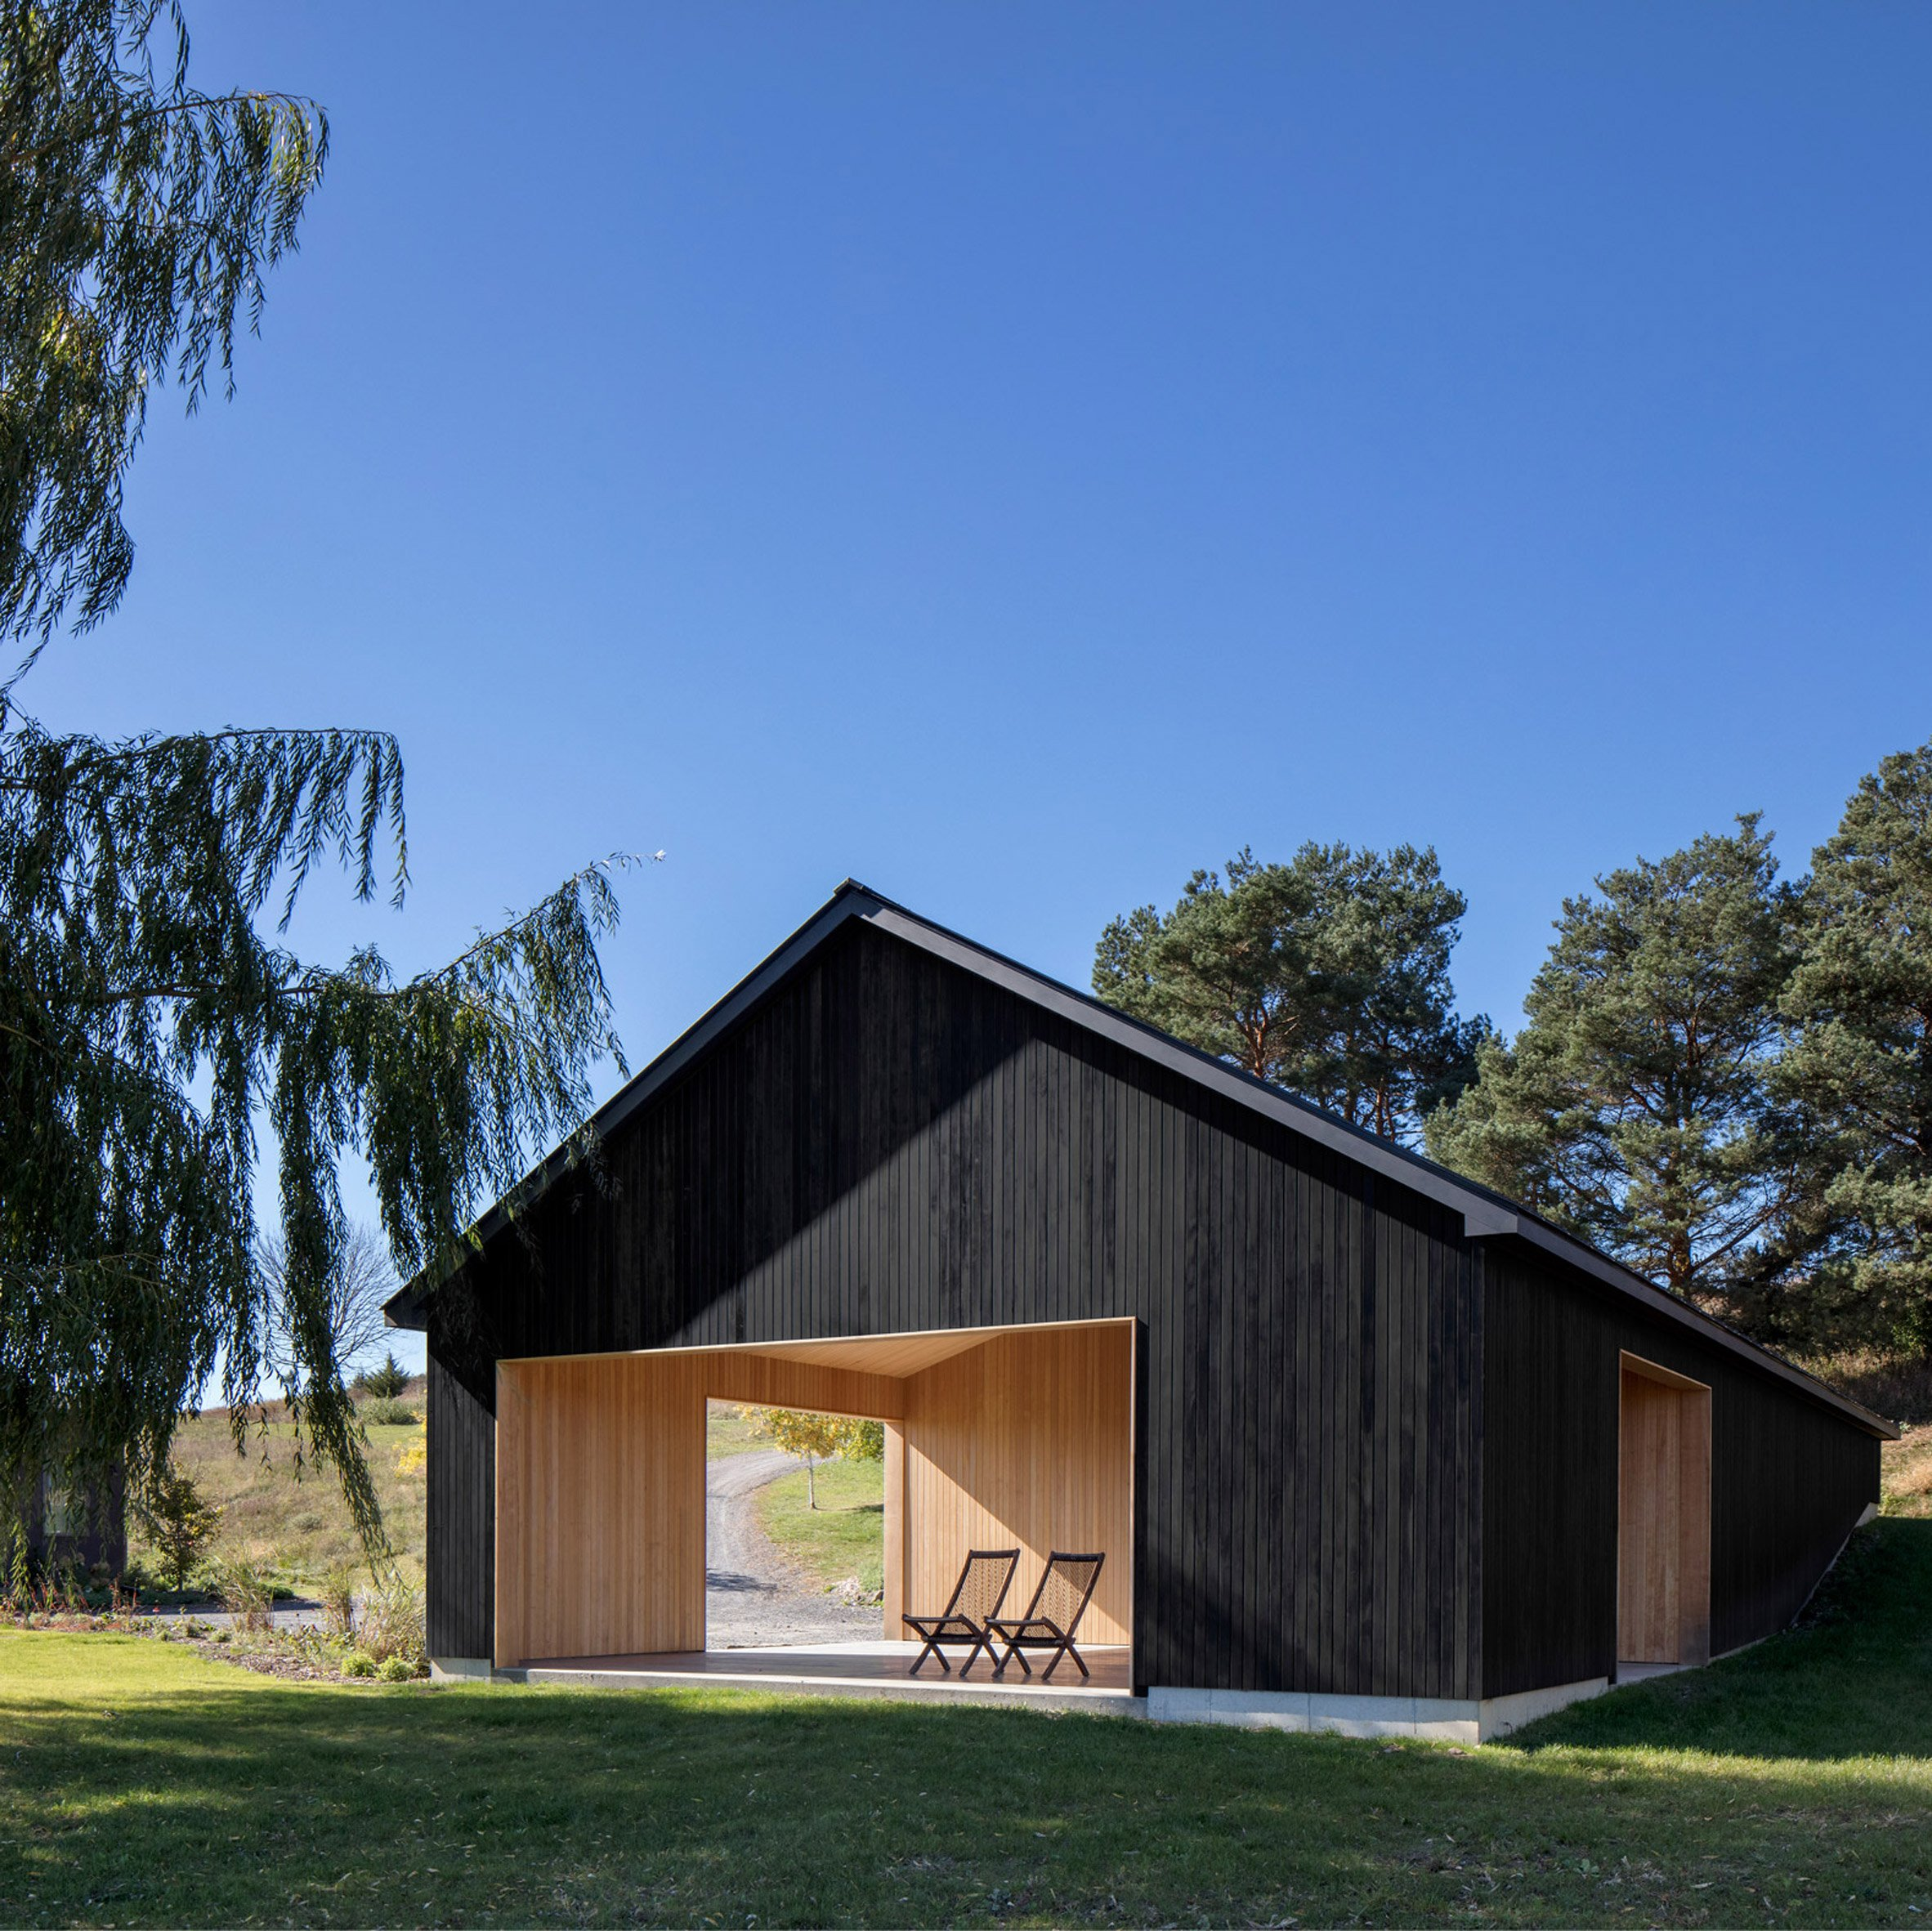 worrell yeung adds minimalist black barn to traditional property in upstate new york